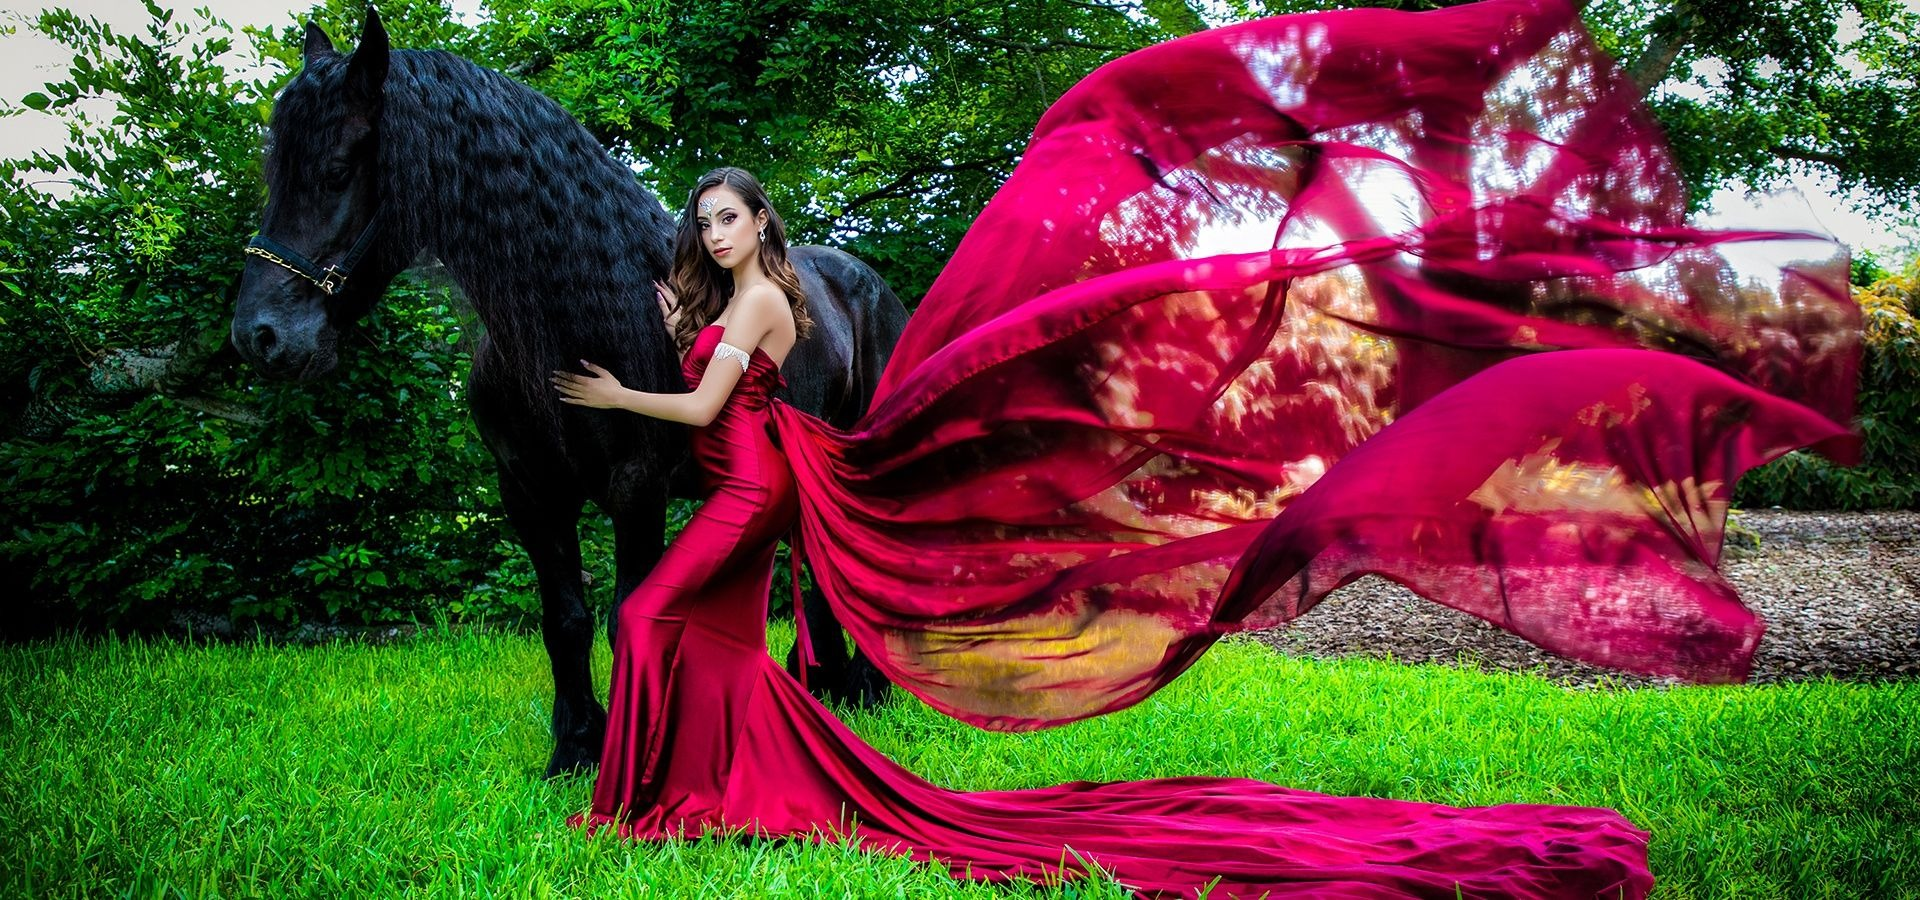 Bellaquinces Photography Photography Video And Dresses For Quinceanera And Sweet 16